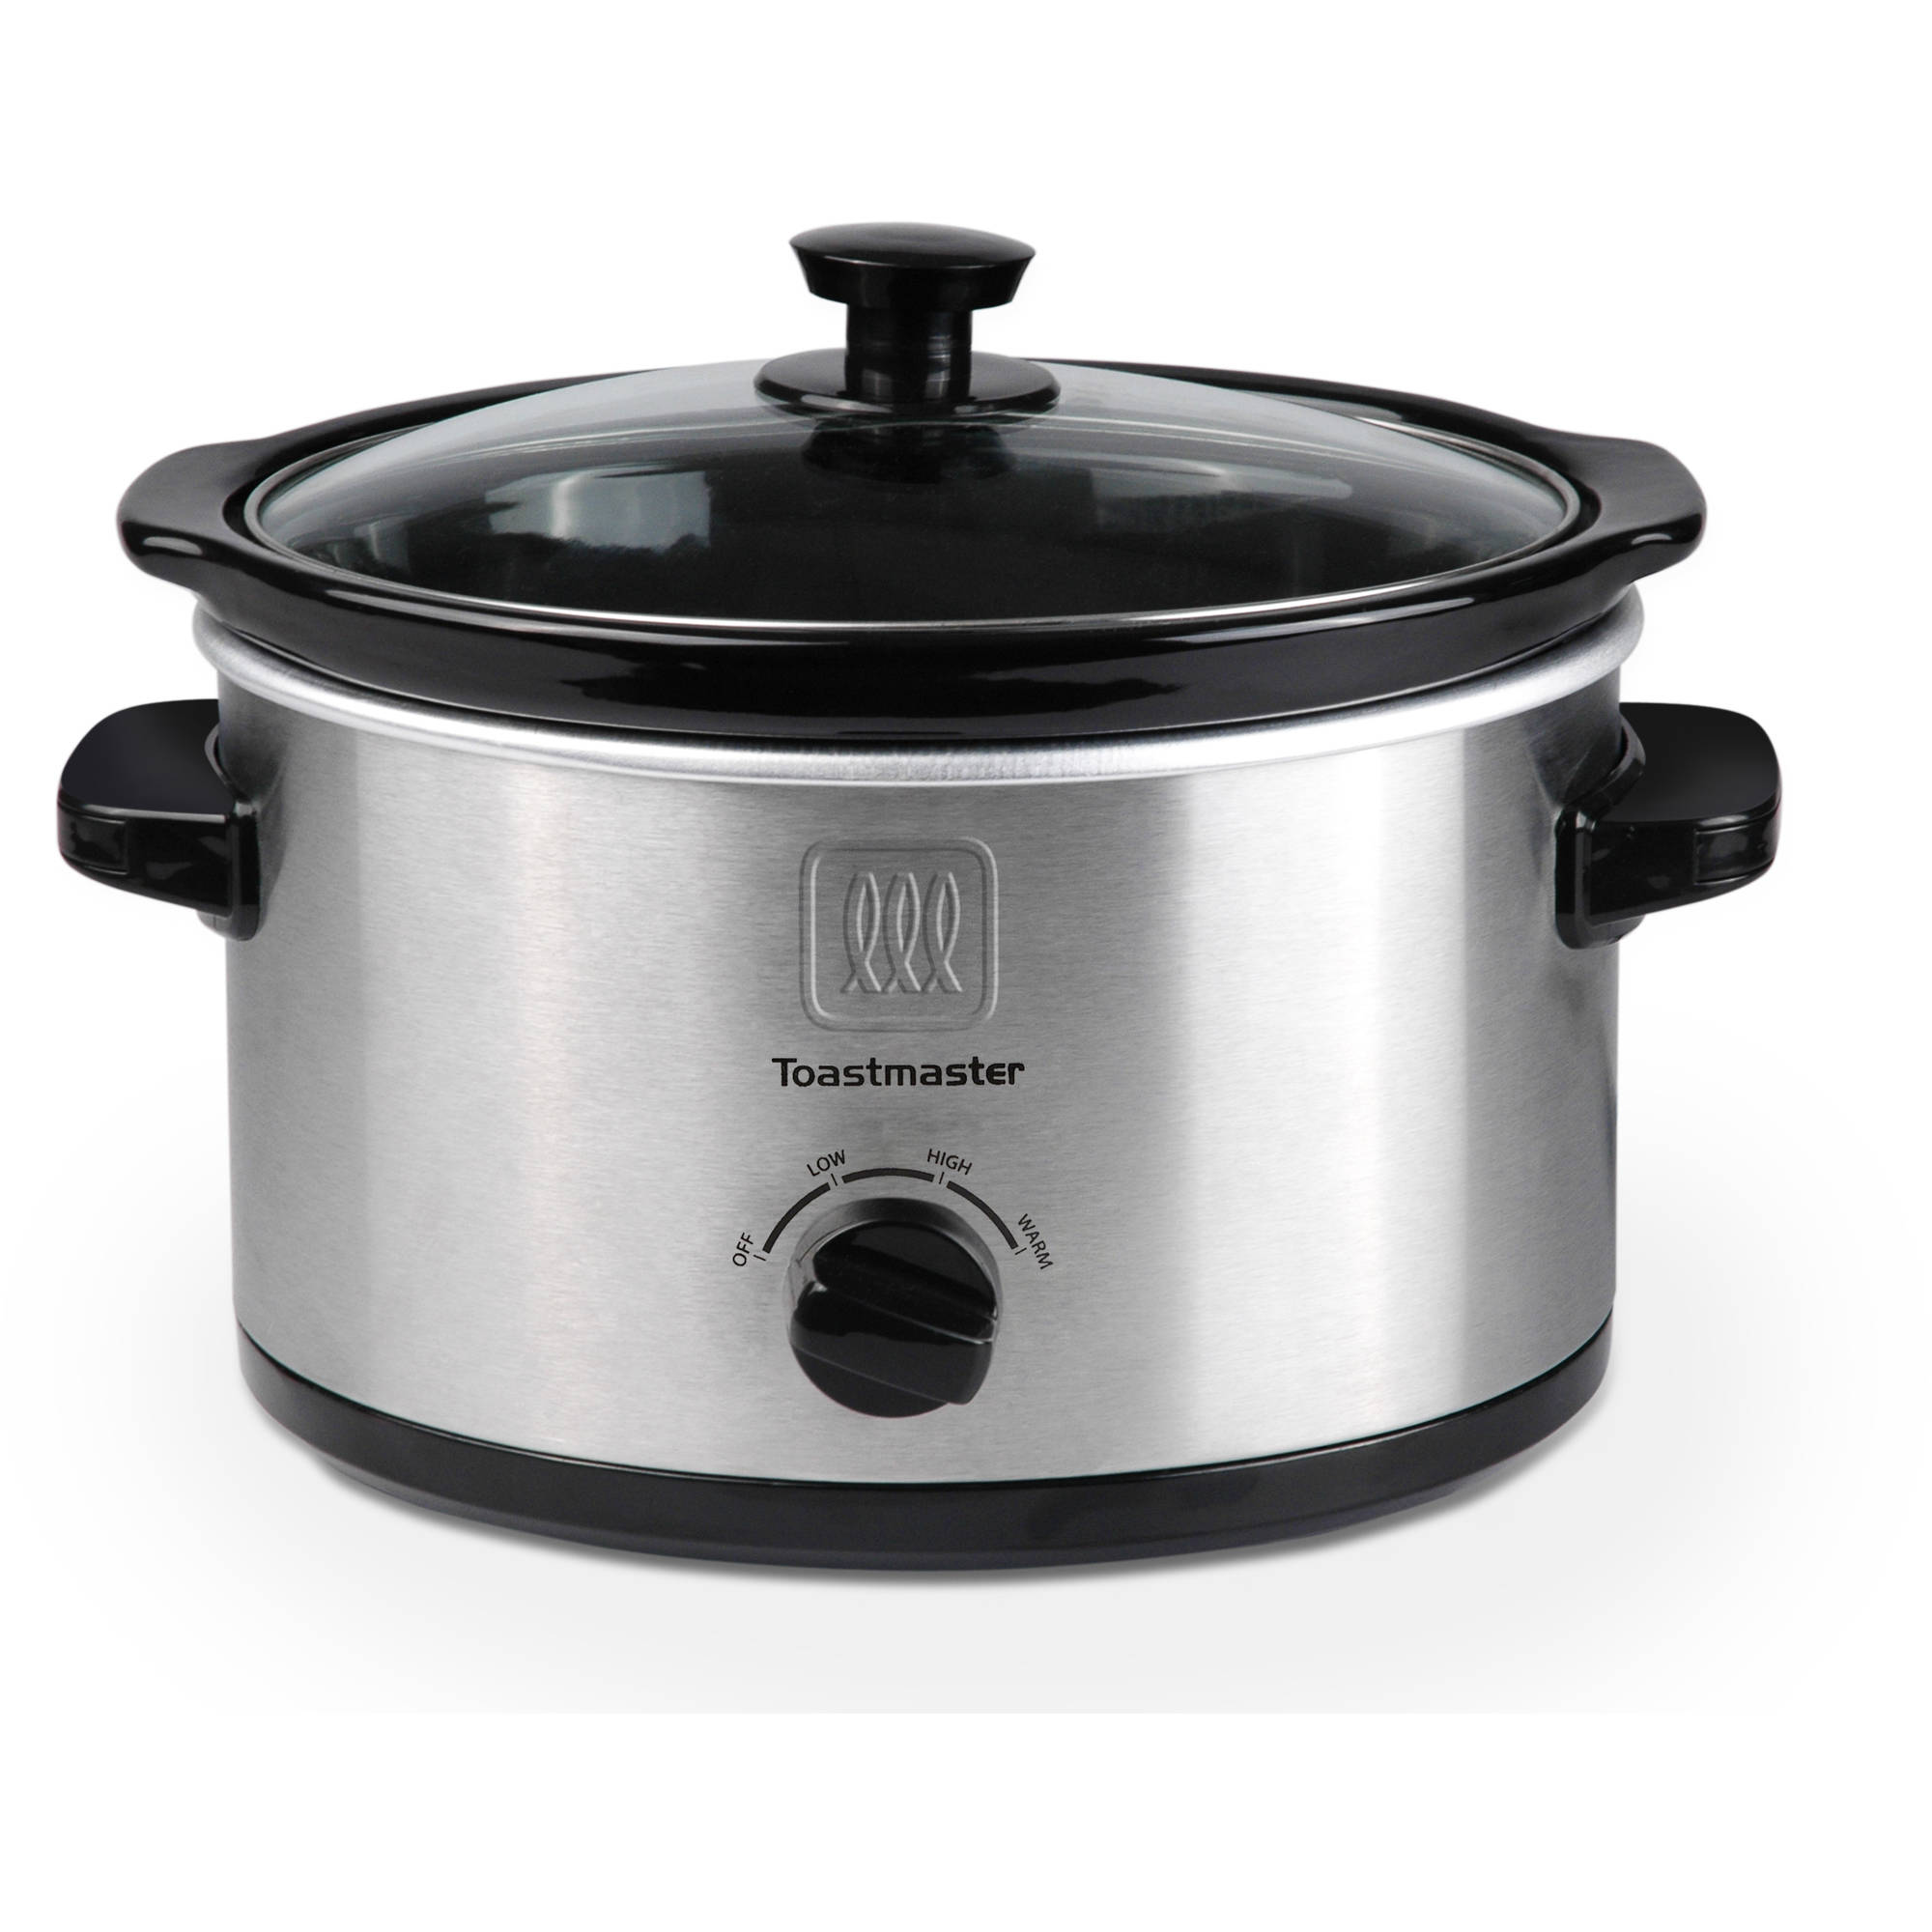 Toastmaster 4-Quart Slow Cooker